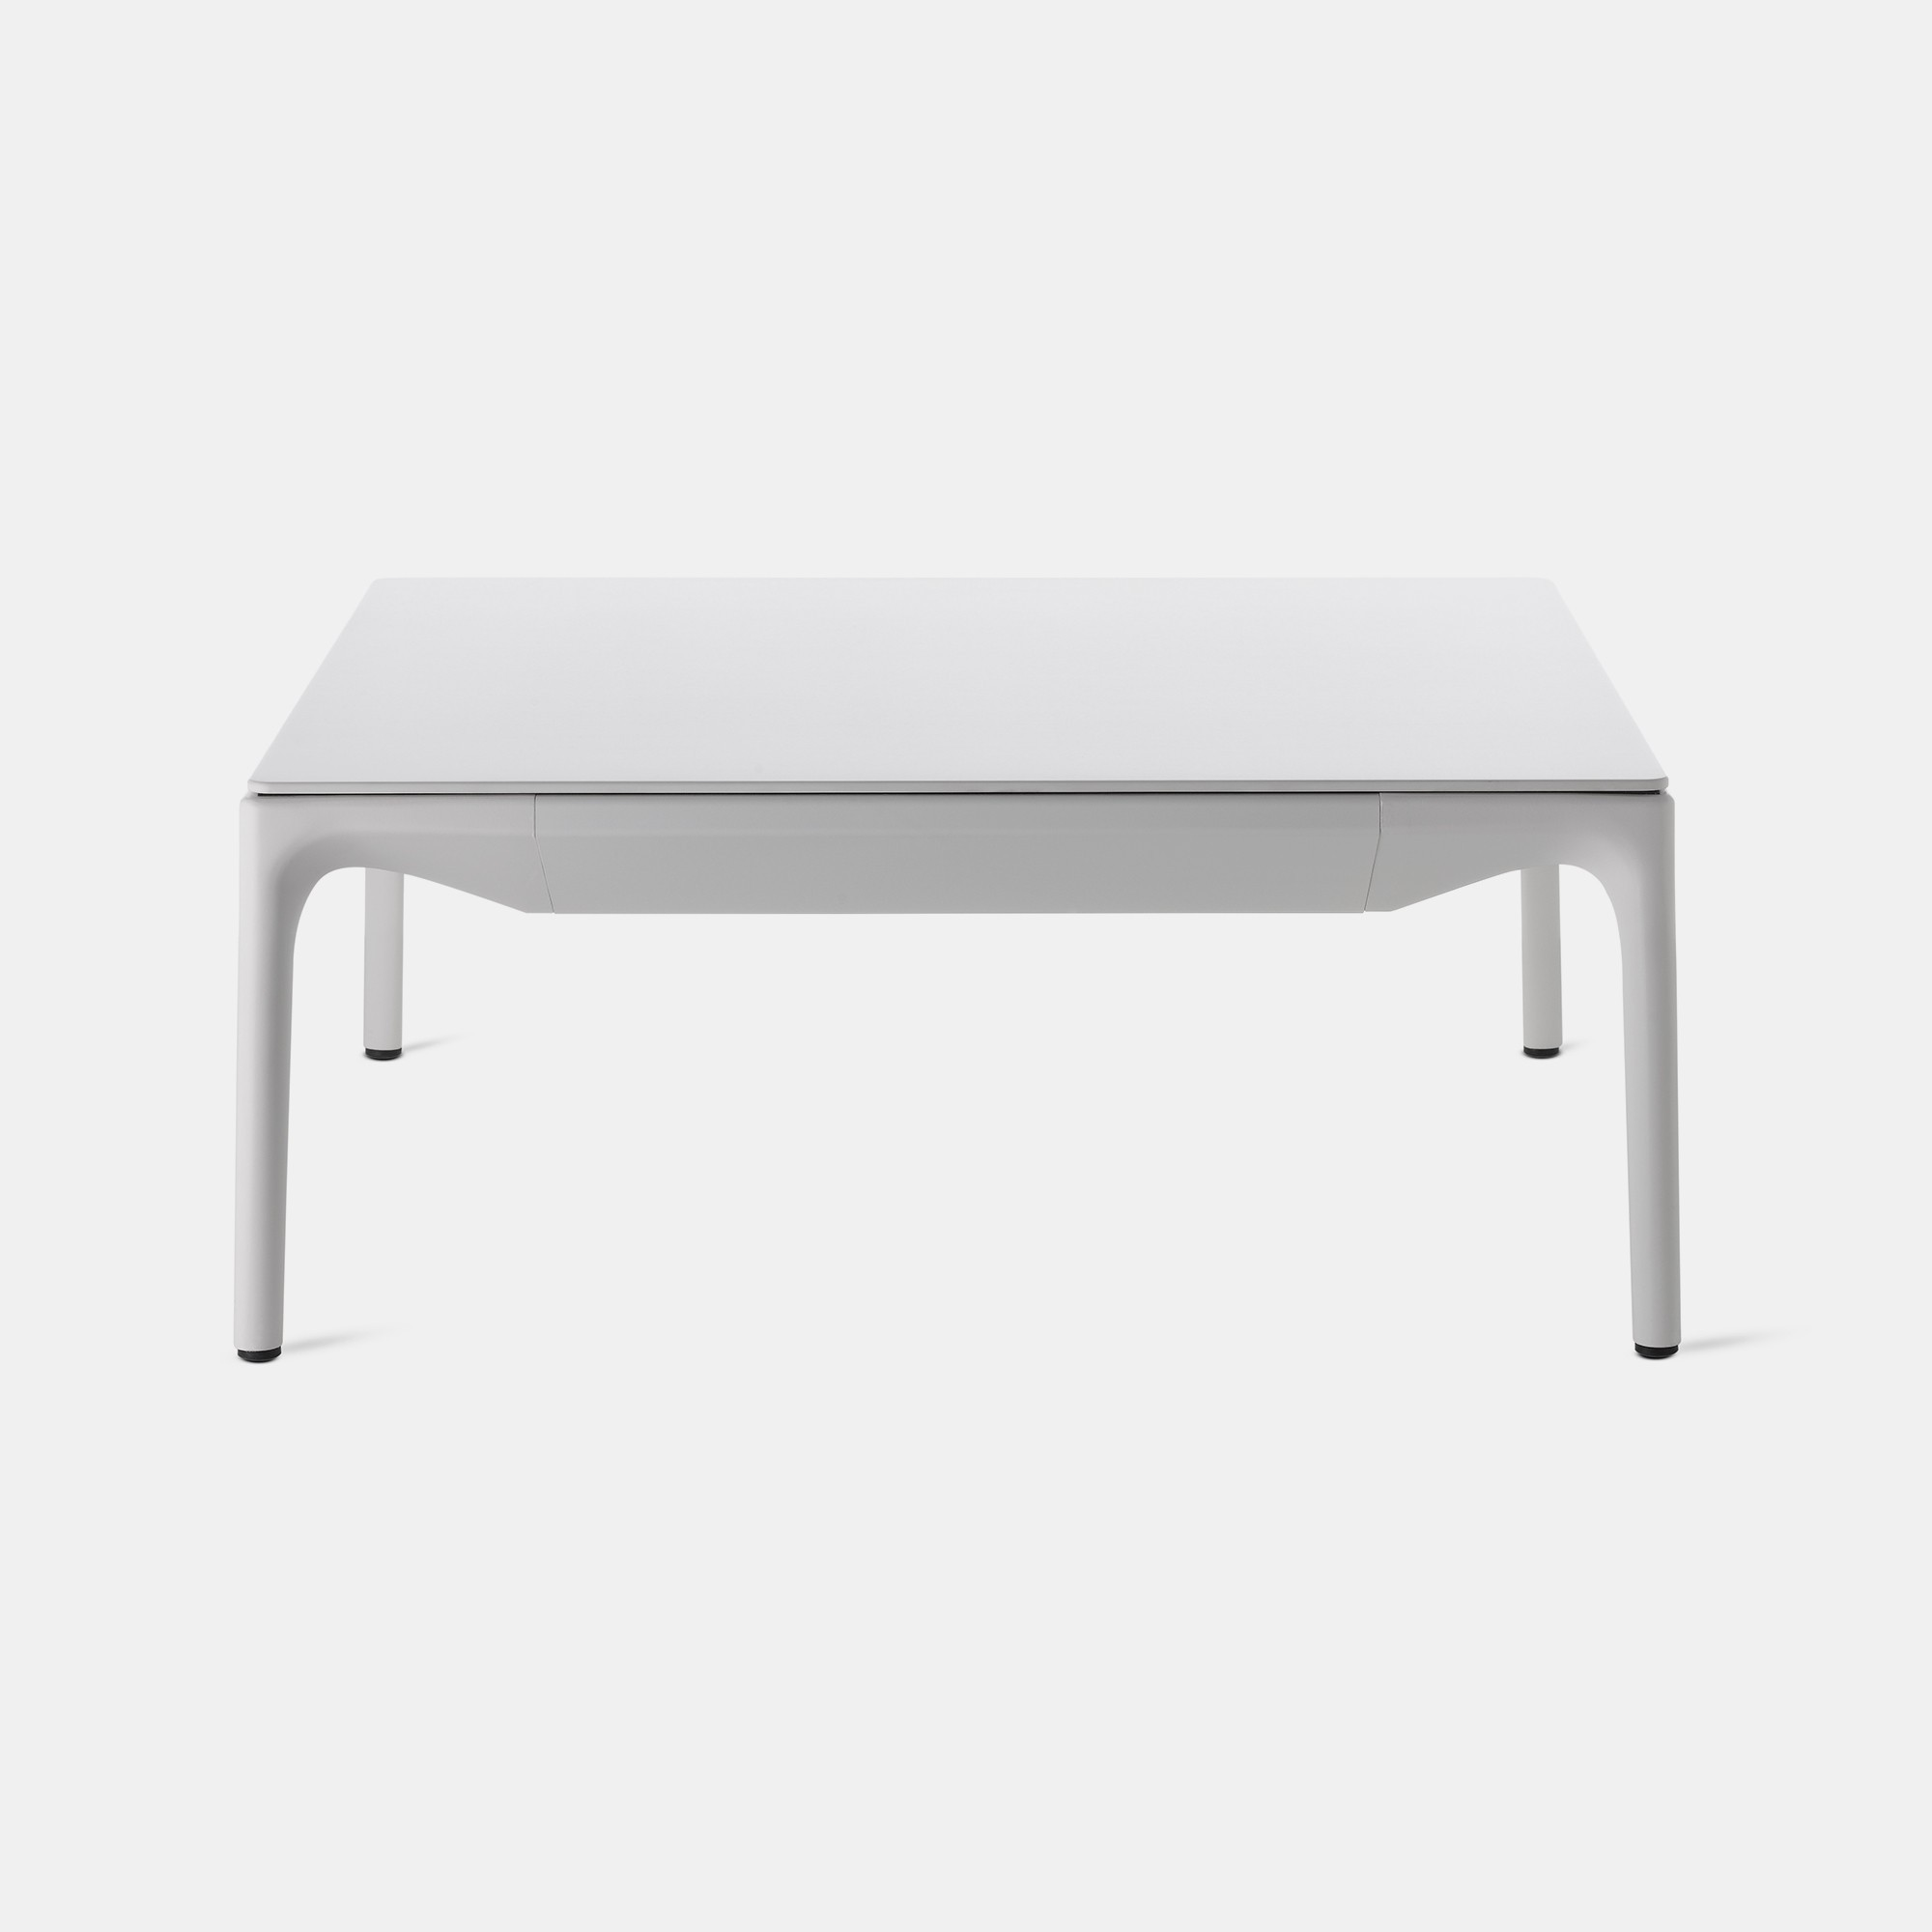 Yale Low Table Rectangular Or Square Shaped Coffee Tables Mdf